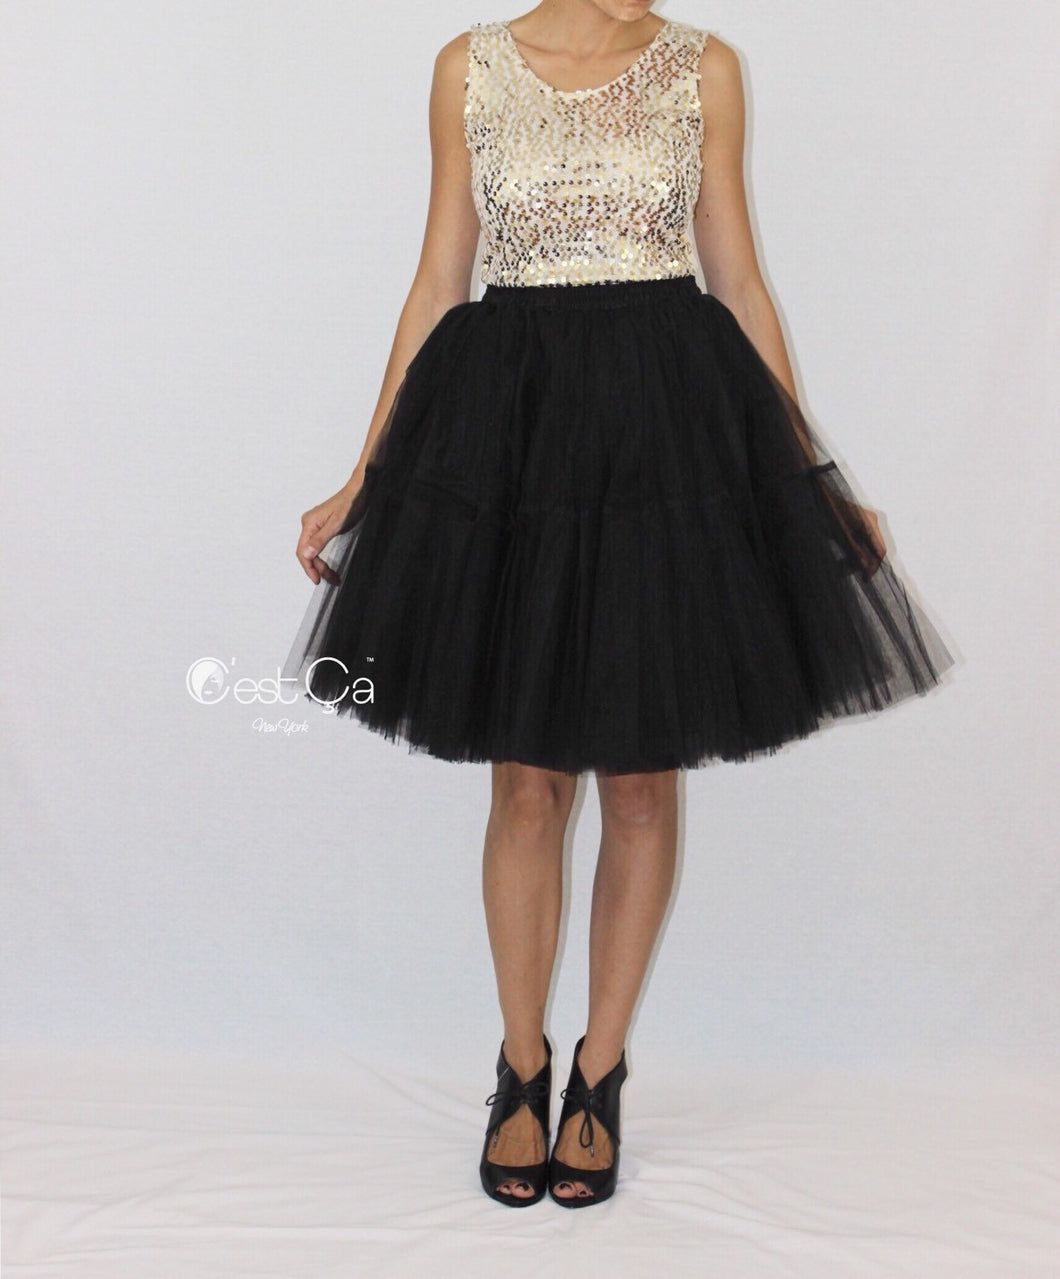 Beatrice Black Tulle Skirt - Midi - C'est Ça New York